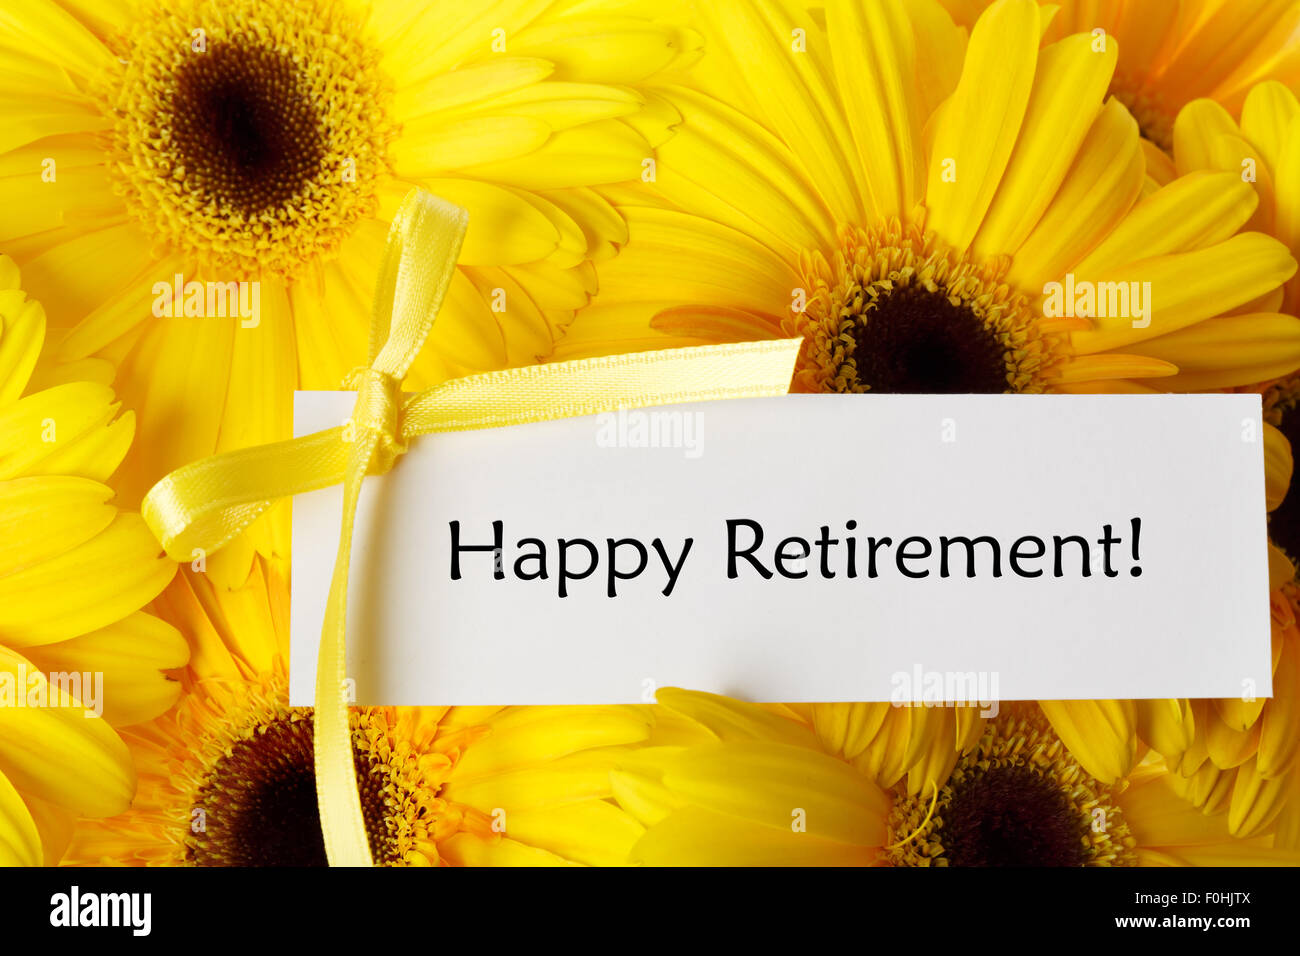 Happy retirement greeting card stock photos happy retirement happy retirement message card with yellow gerberas stock image m4hsunfo